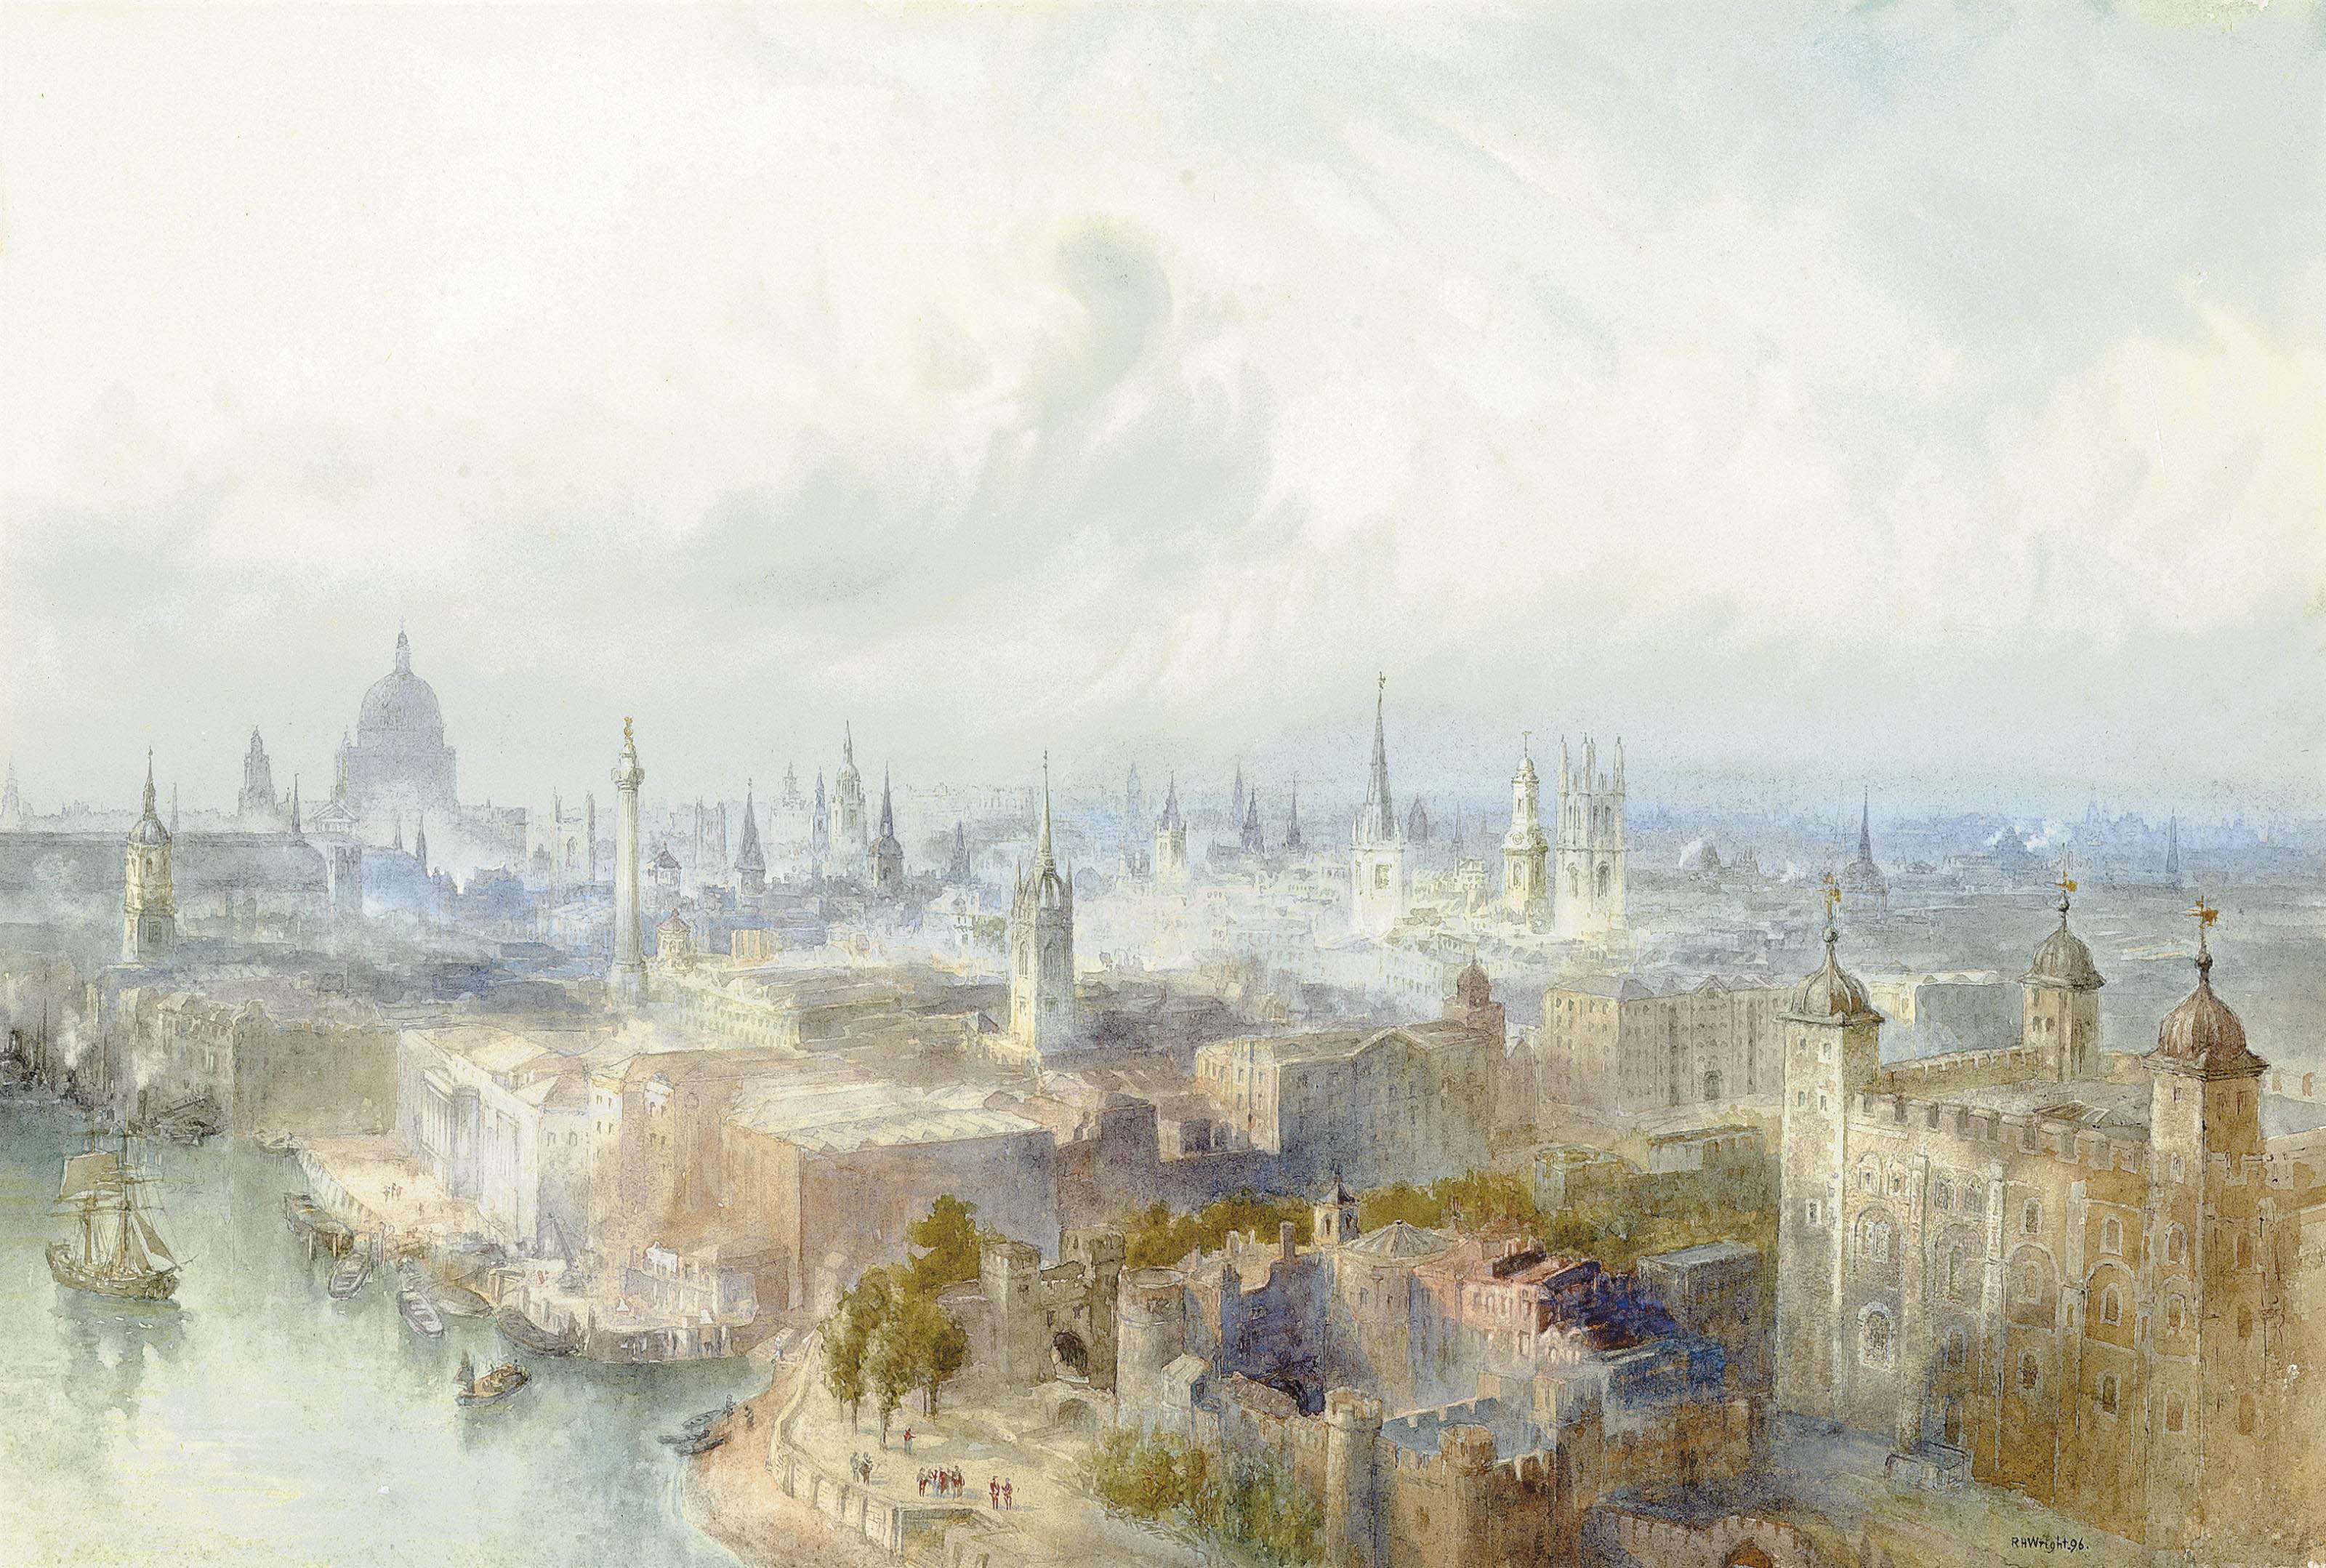 An extensive view of London observed from Tower Bridge looking towards St. Paul's Cathedral